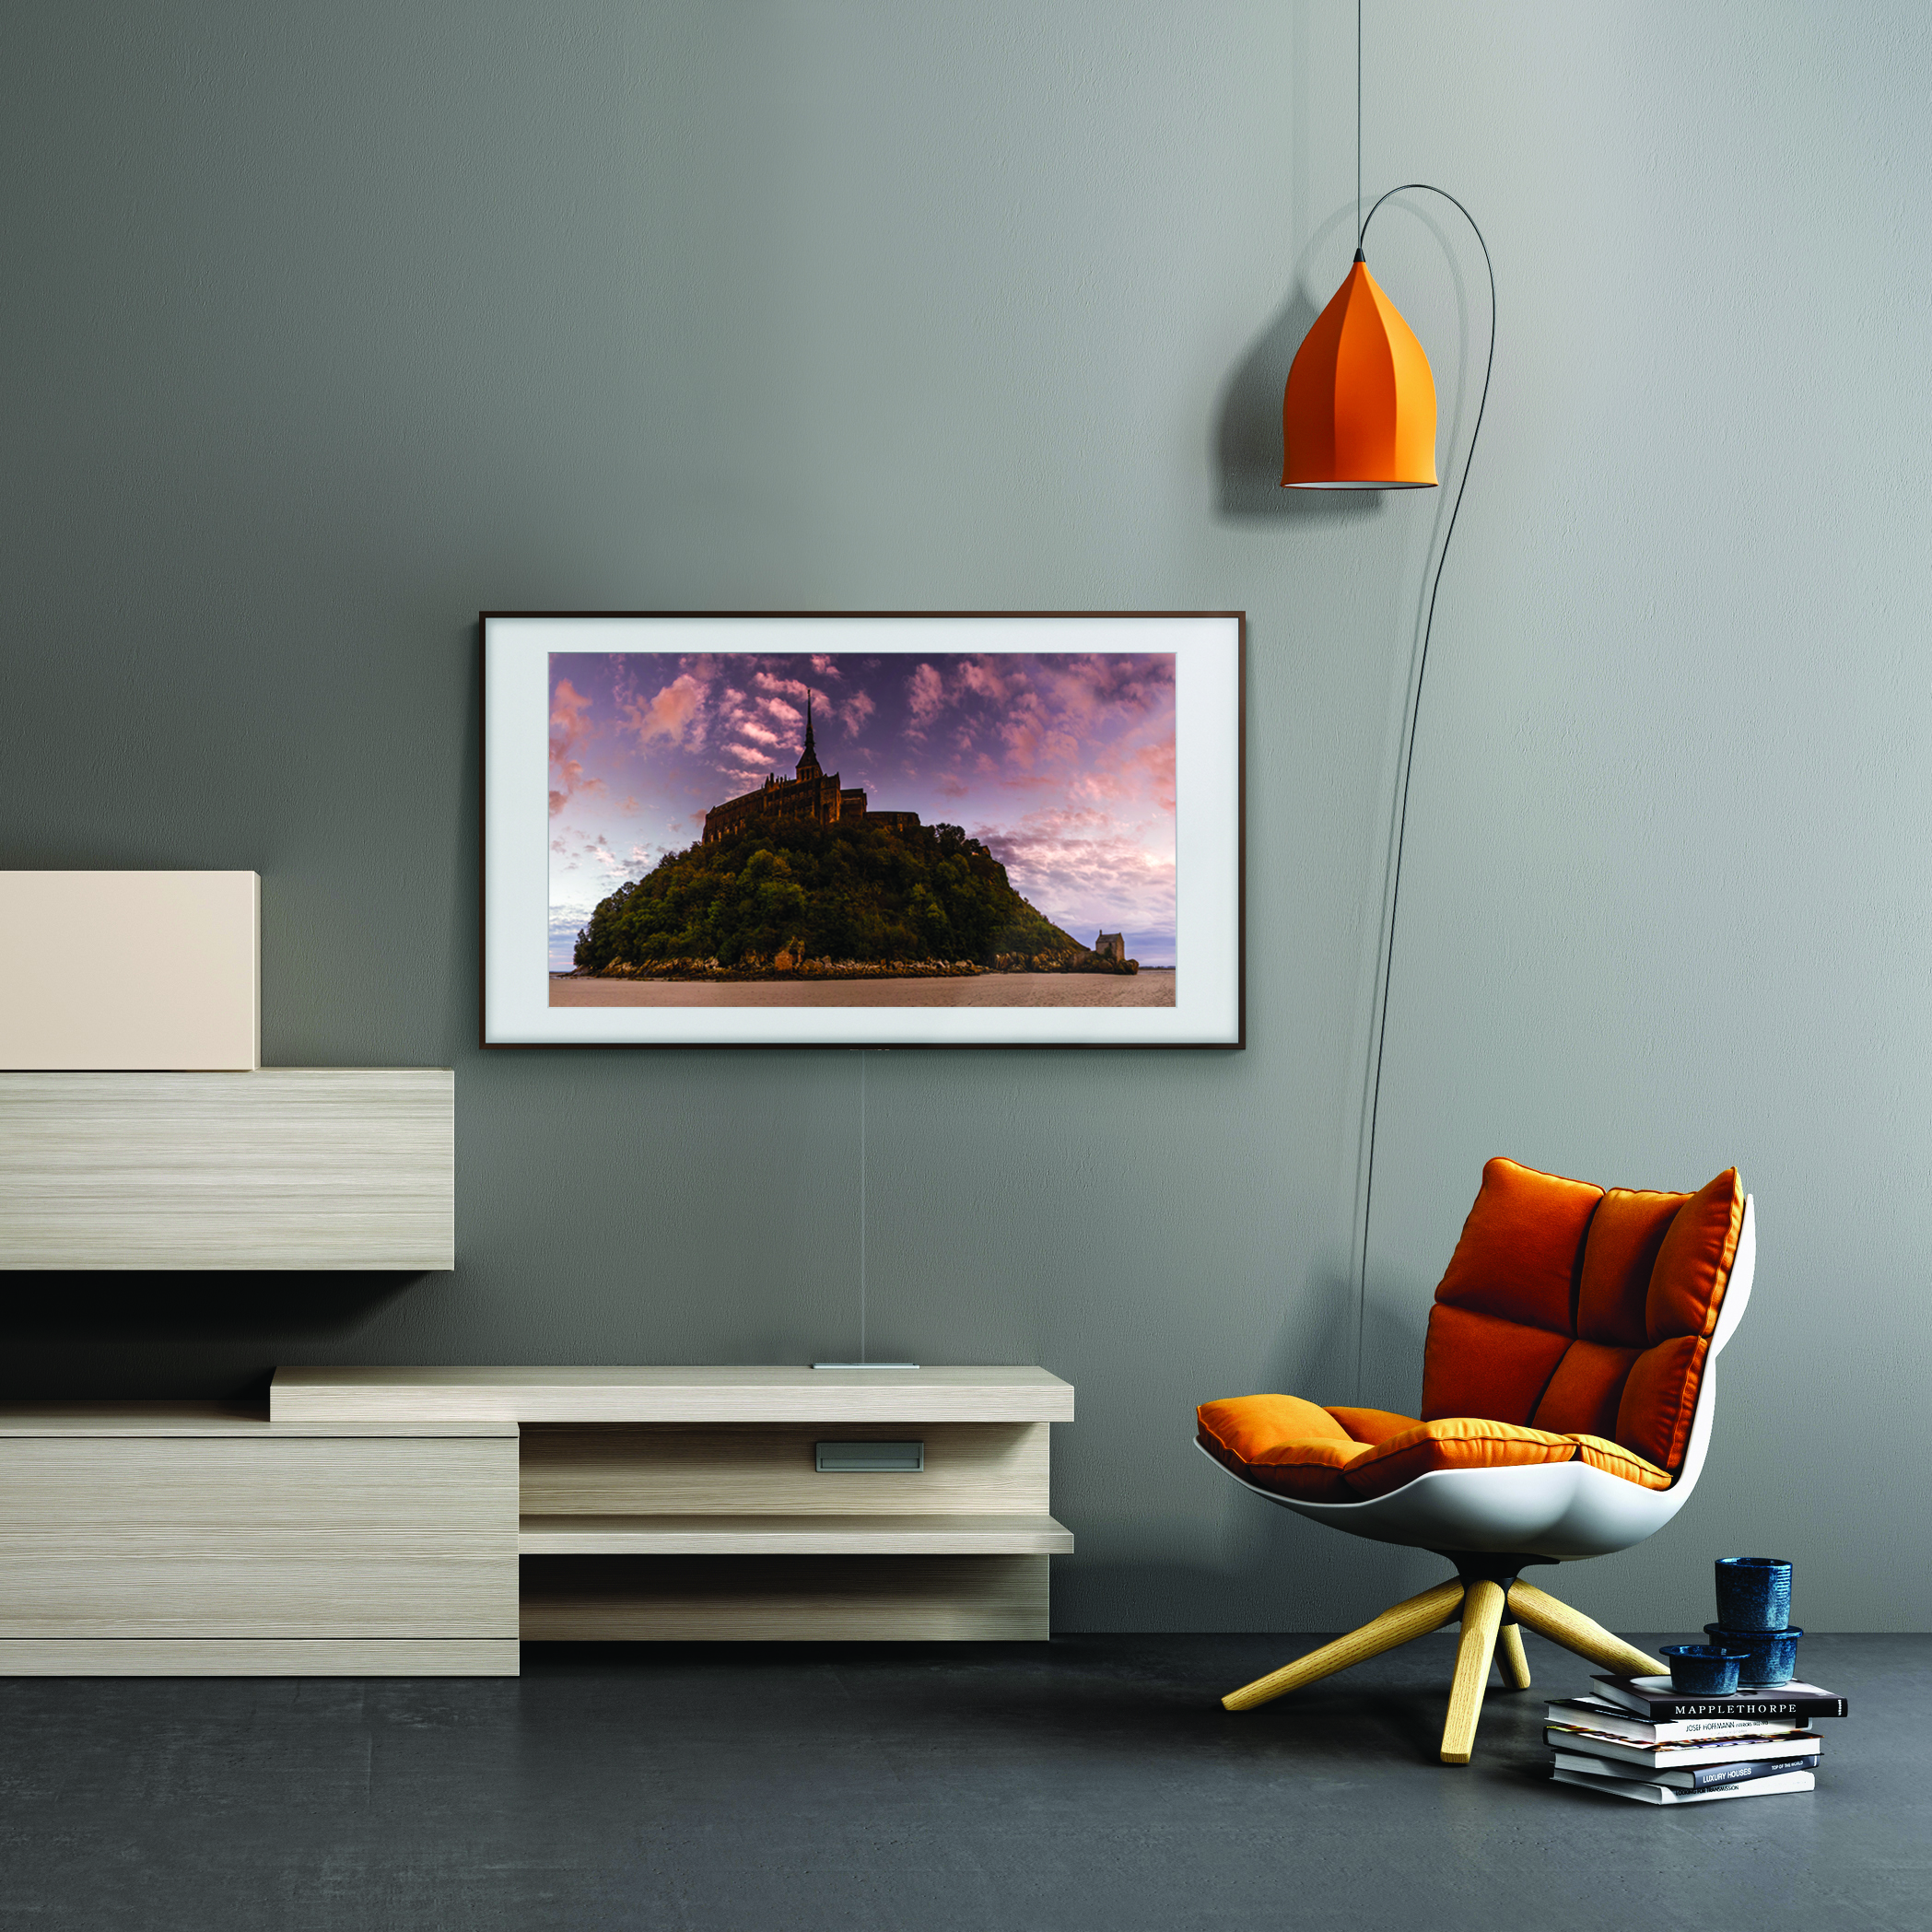 samsung announces 2019 lifestyle tvs the frame and serif tv will be on display at ces 2019